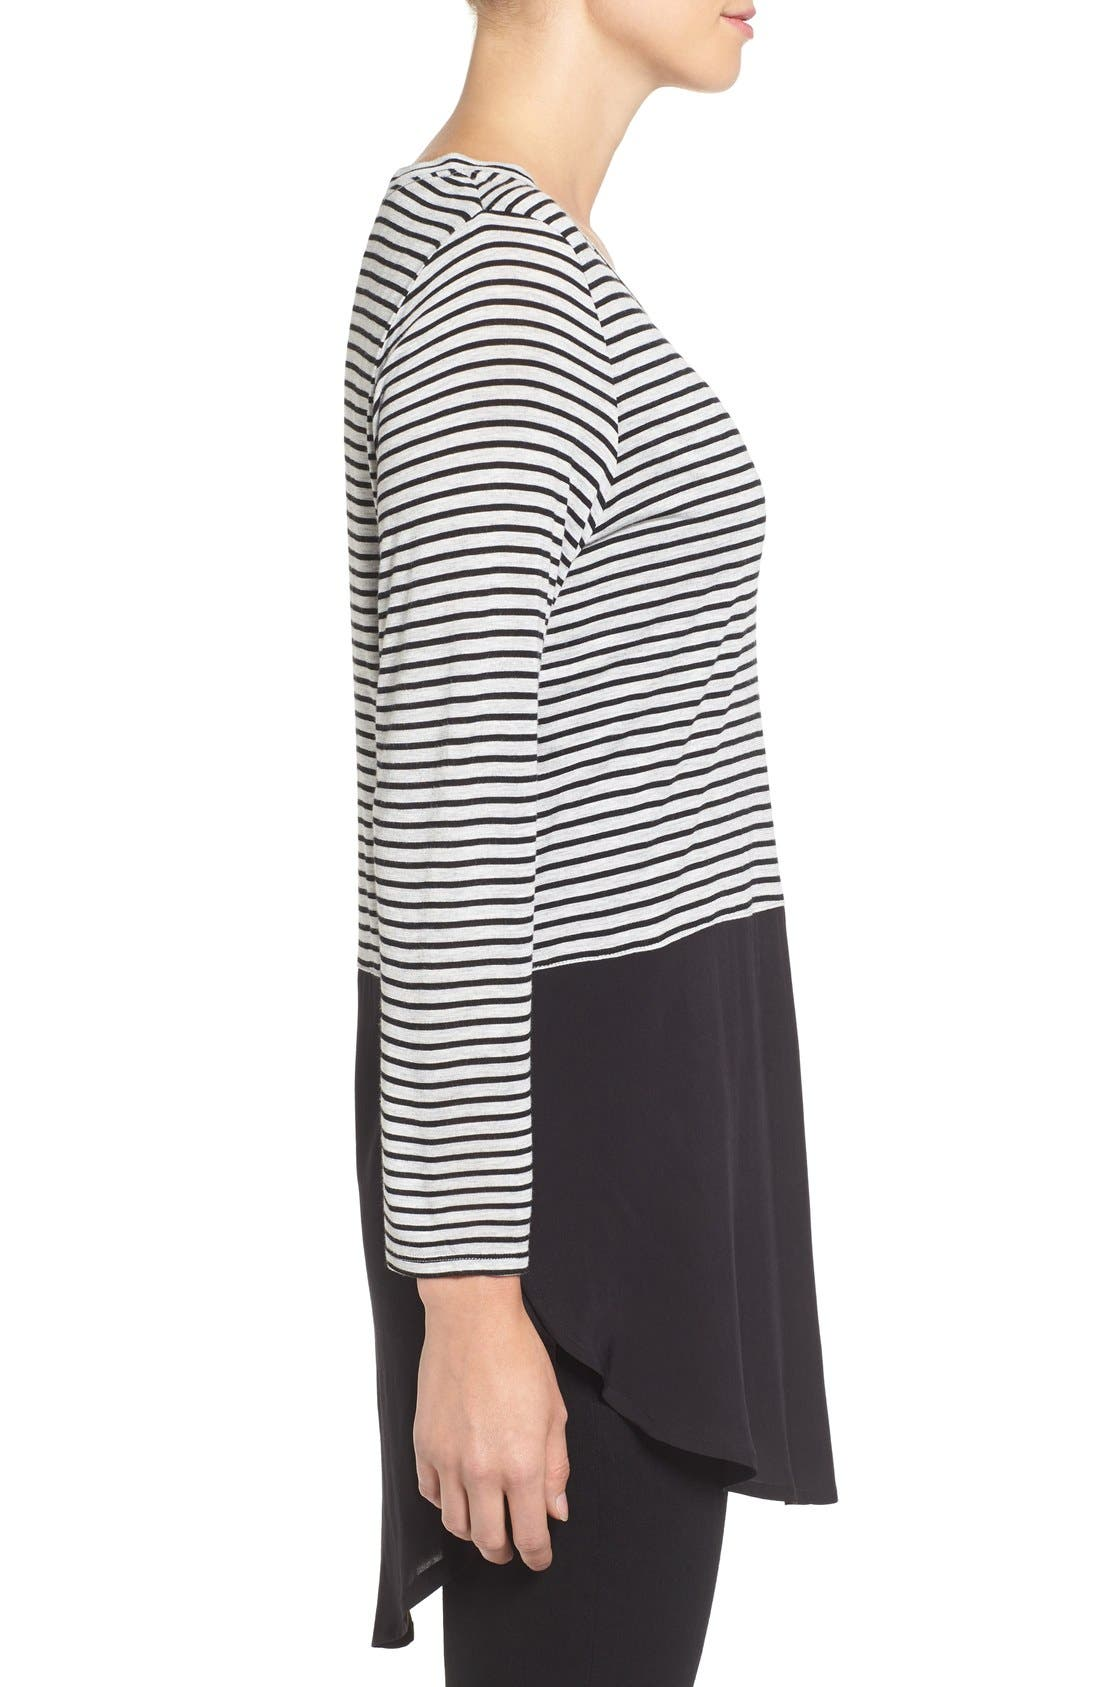 Alternate Image 3  - Two by Vince Camuto 'Anchor Stripe' Mixed Media Tunic